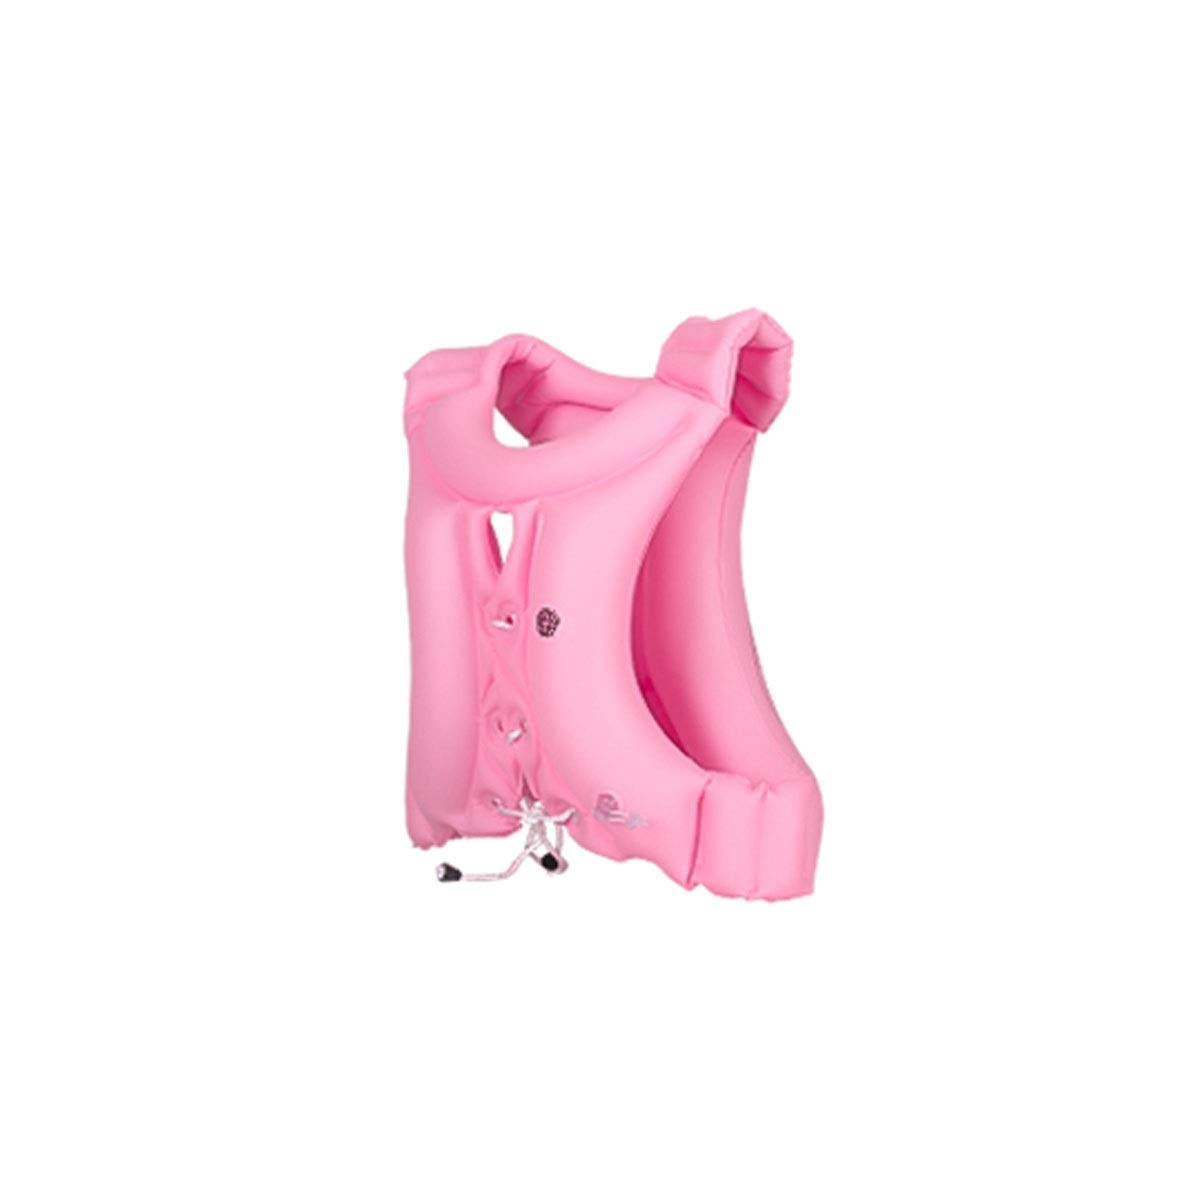 Style2 Swim Ring, Human Body Linear Design, Safe Fit, High Buoyancy, Environmentally Friendly Pvc Material, Pink, bluee, Small Wing Style Design (four Styles For You To Choose) (Style   Style2)